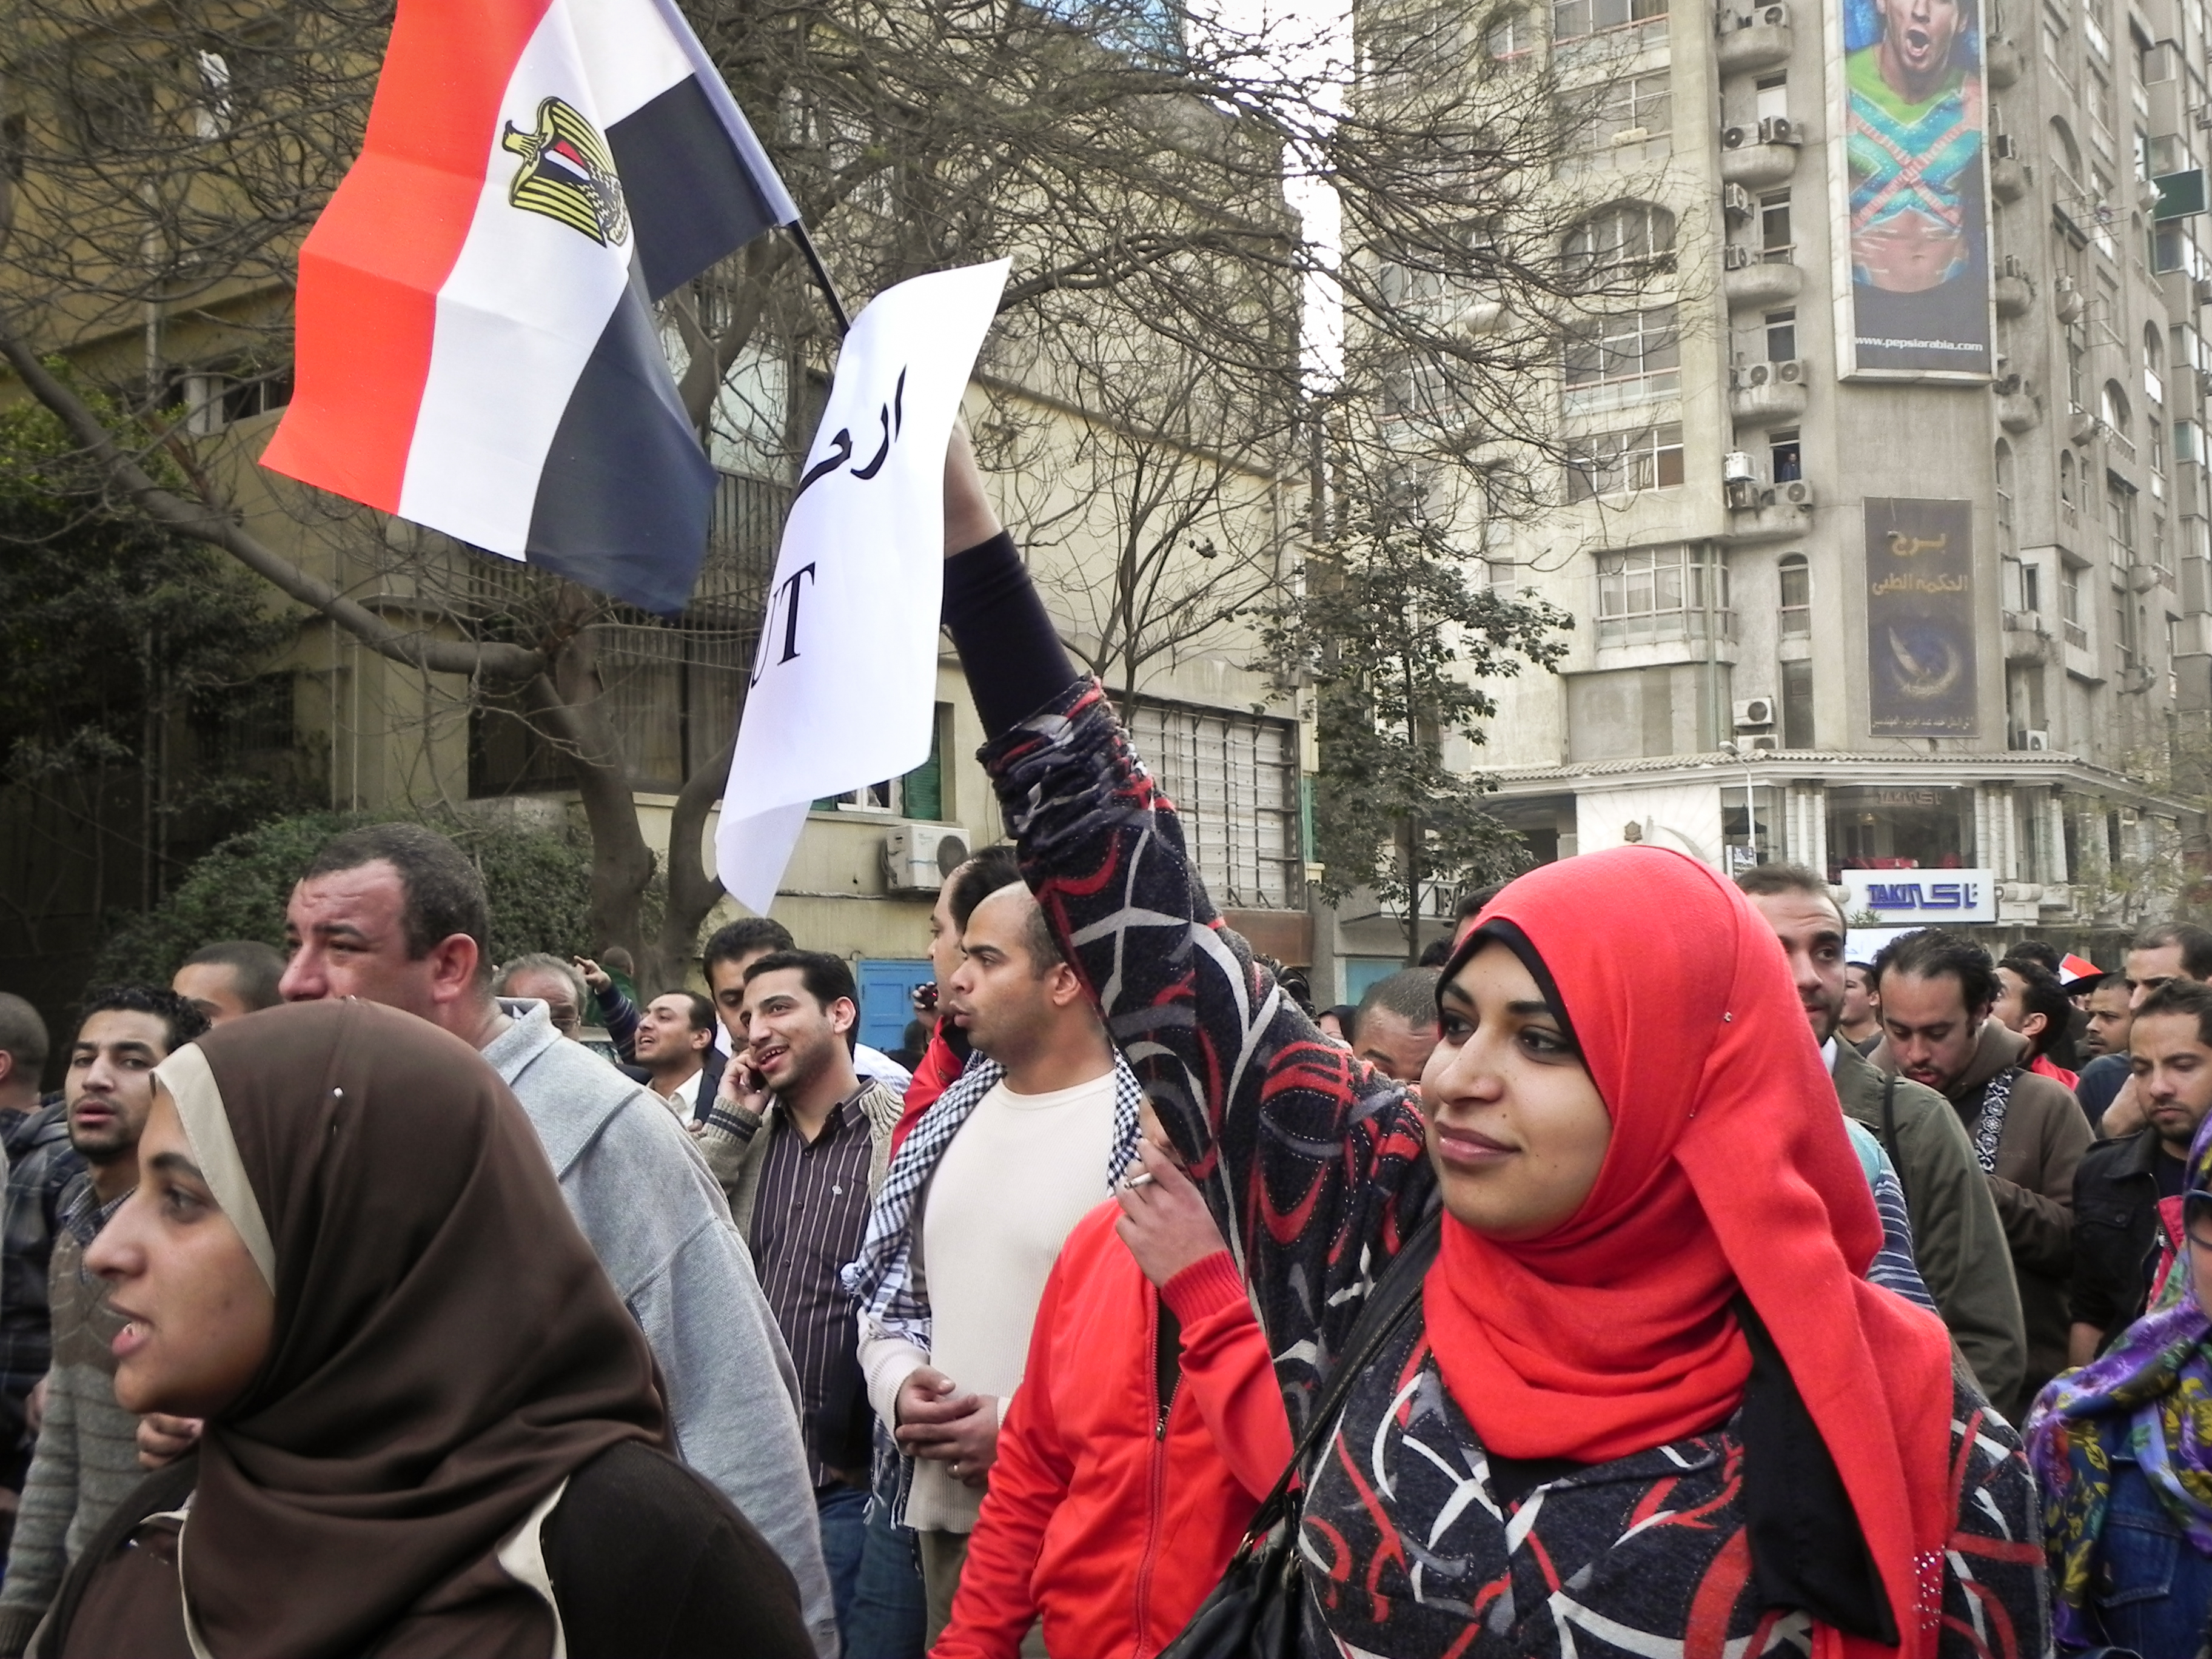 Egypt: Remembering the old and approaching the new